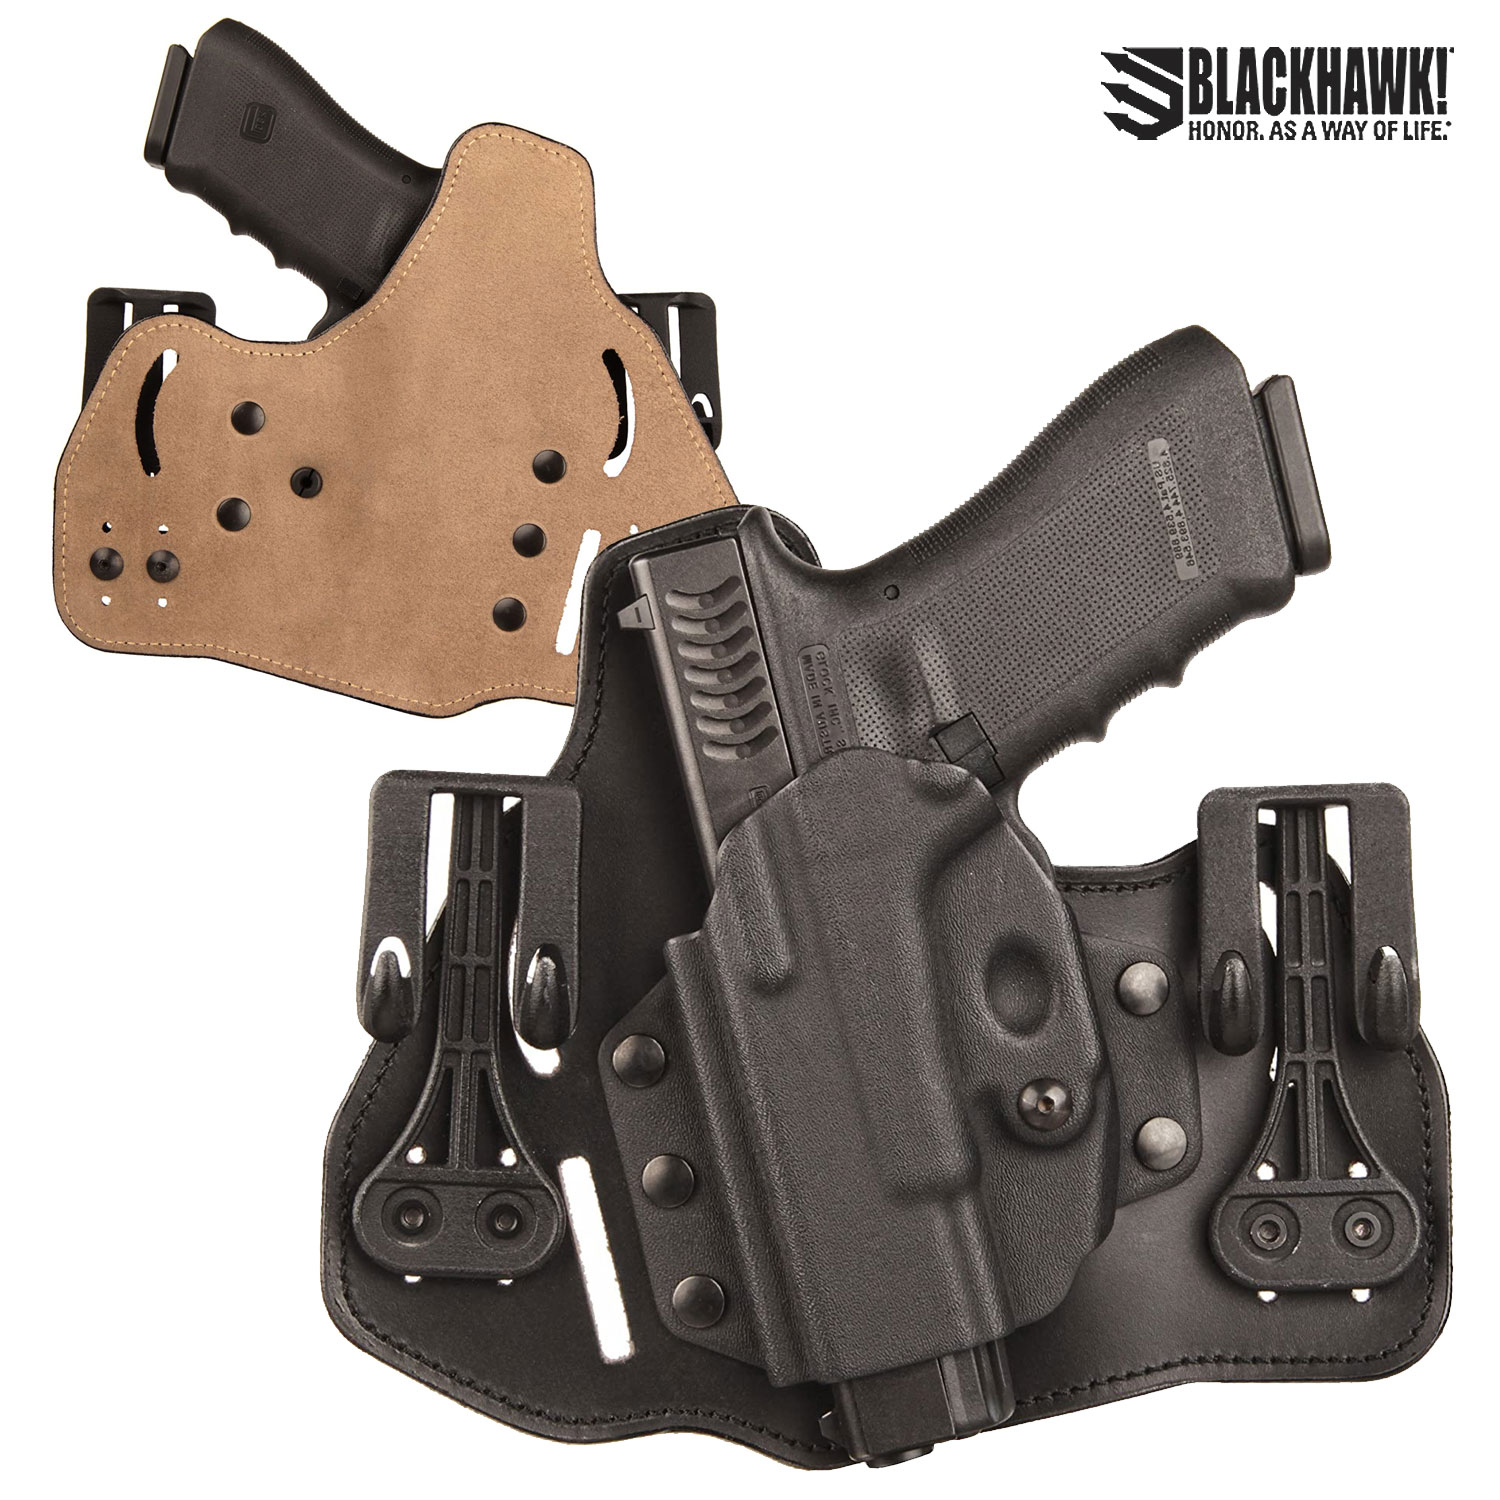 Blackhawk 3 Slot Leather Tuckable Pancake Holster Glock 45 S&W M&P LH